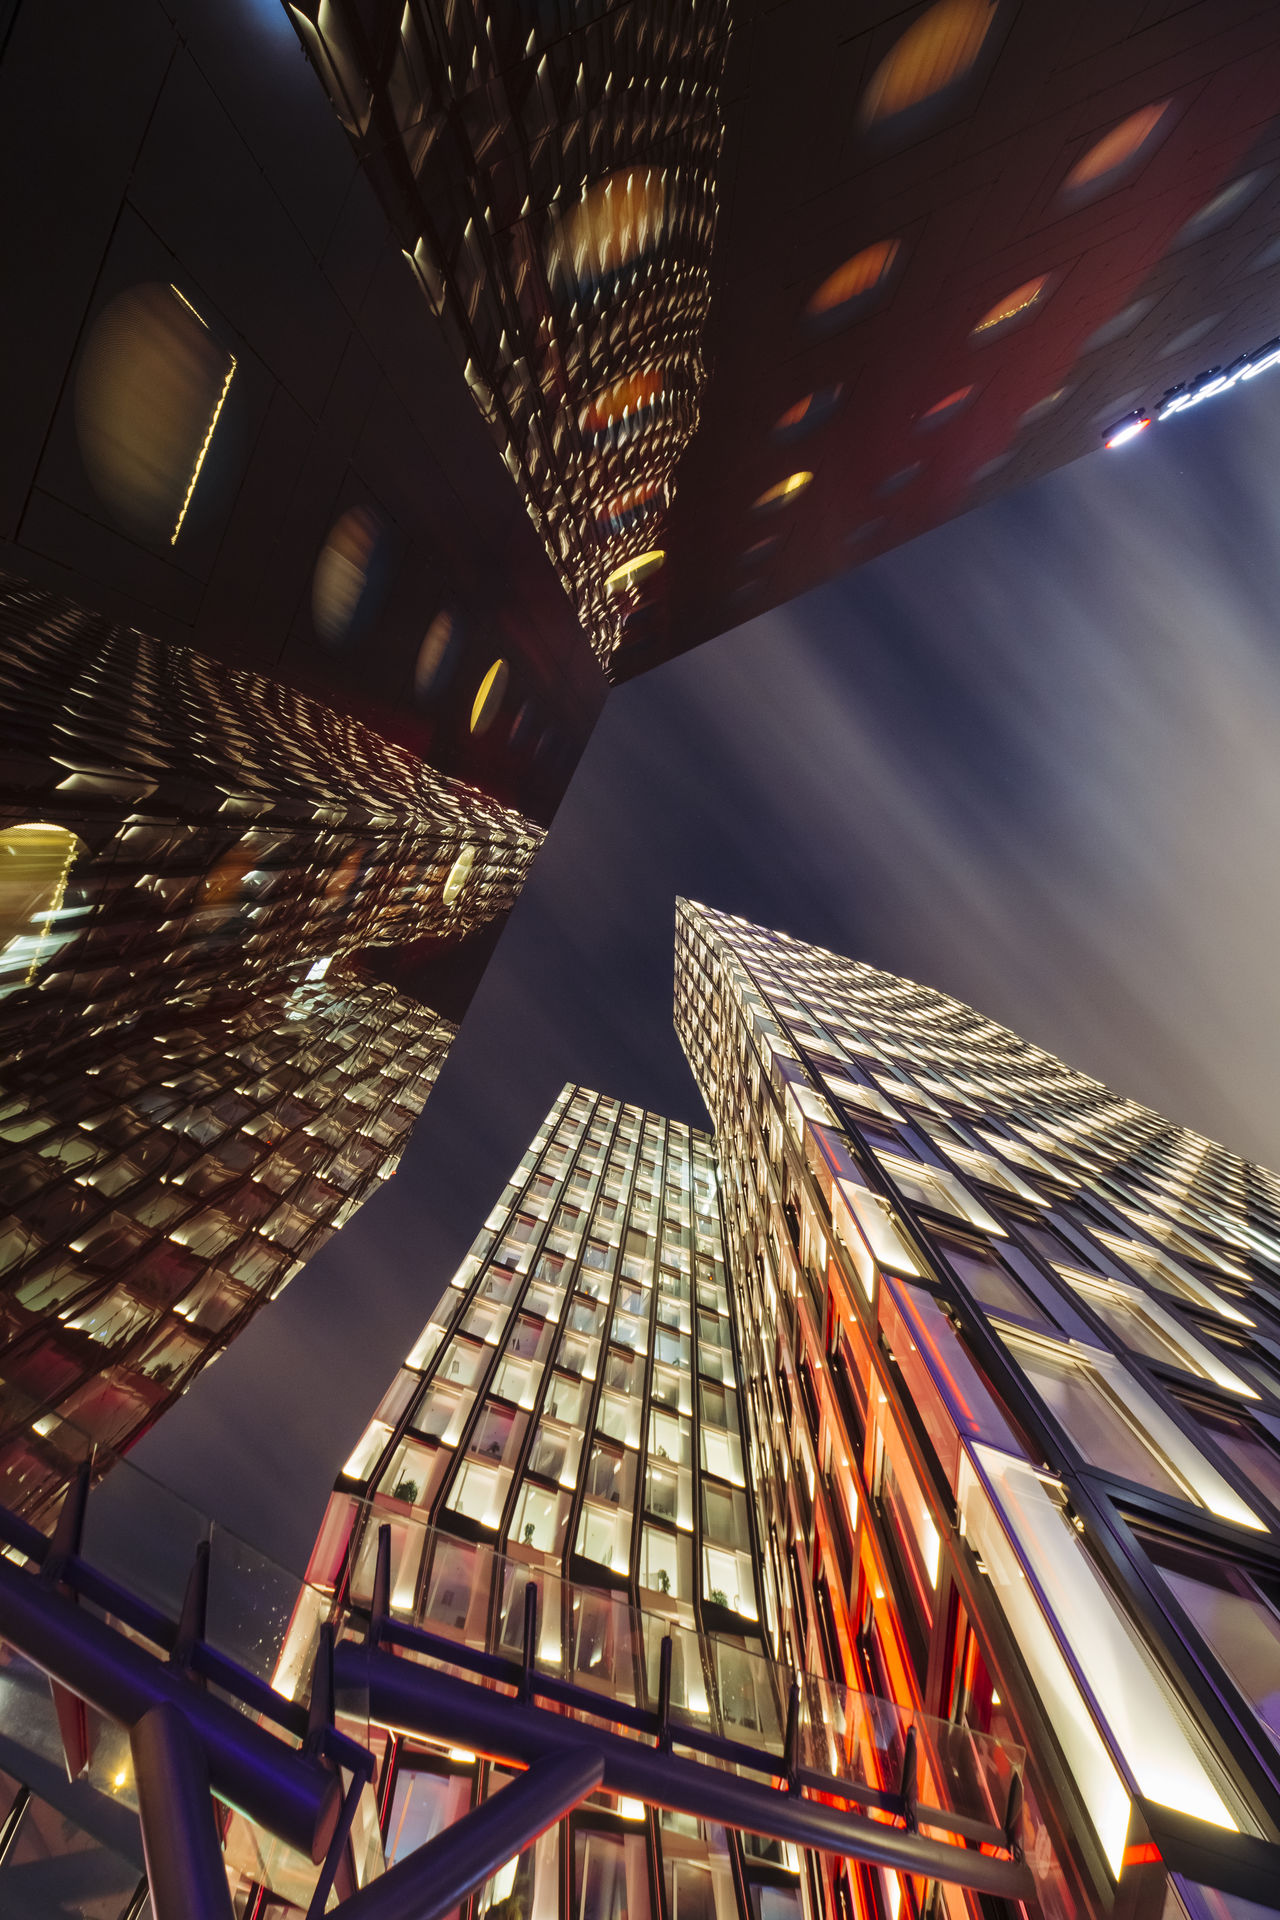 Architecture Architecture Built Structure City City Lights Cityscape Cityscapes Colorful From Below Hamburg Illuminated Long Exposure Longexposure Low Angle View Modern Modern Architecture Motion Blur Night Lights Night Photography Reeperbahn  Skyscraper Tanzende Türme Towers